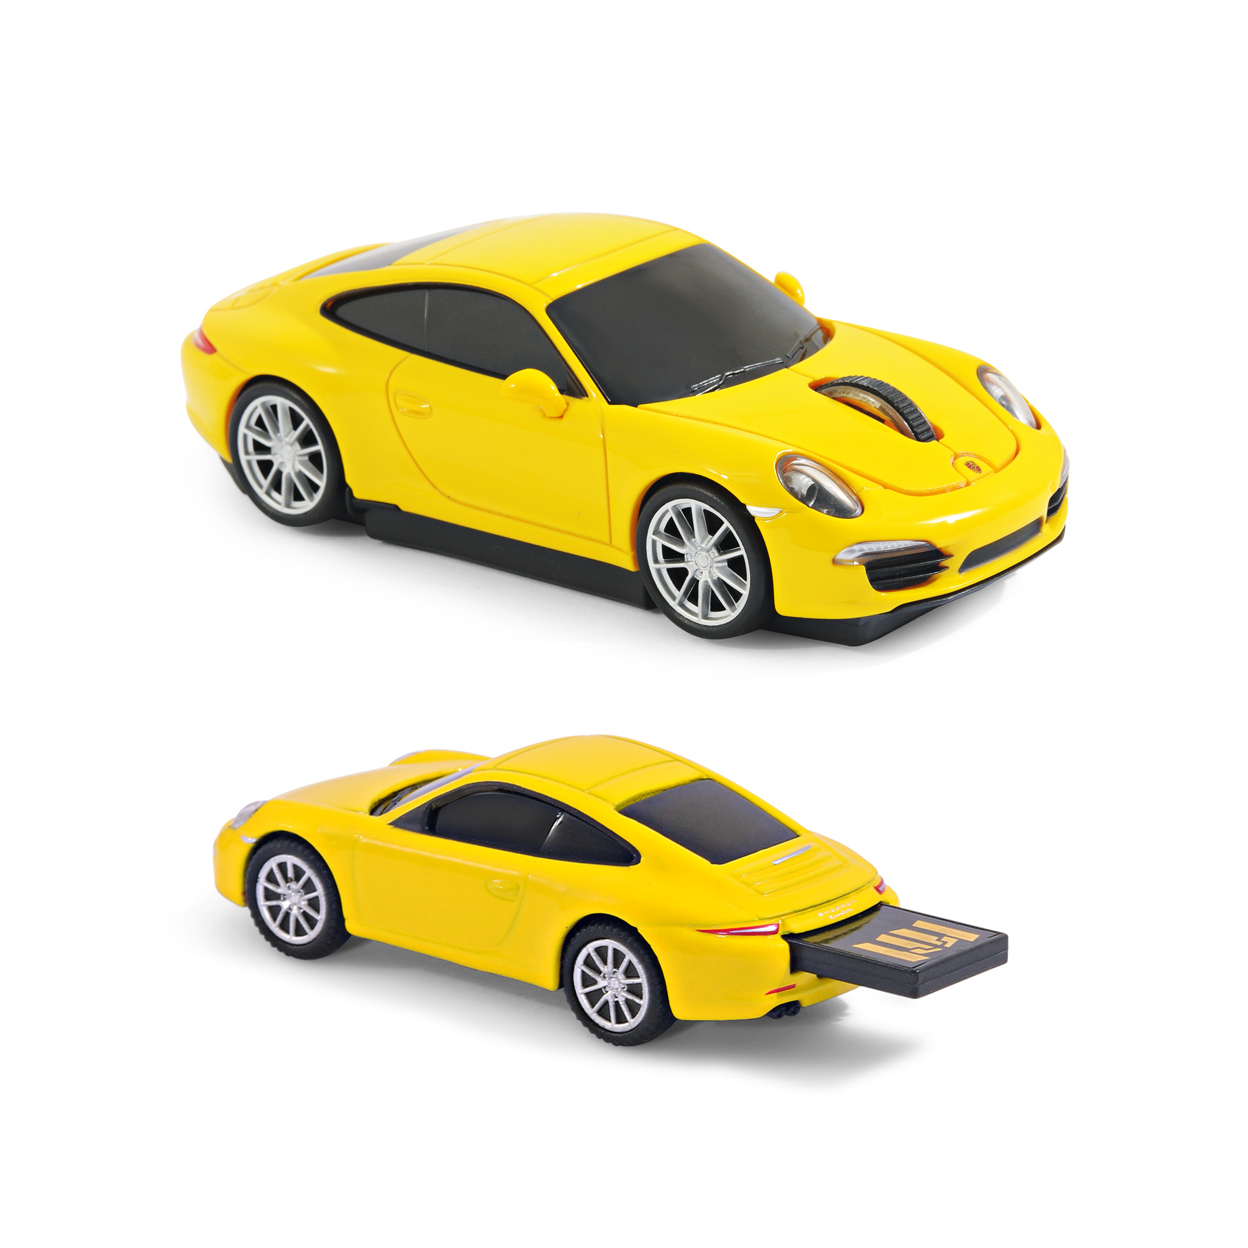 officiel porsche 911 sans fil souris usb 8gb cl de m moire ensemble cadeau ebay. Black Bedroom Furniture Sets. Home Design Ideas